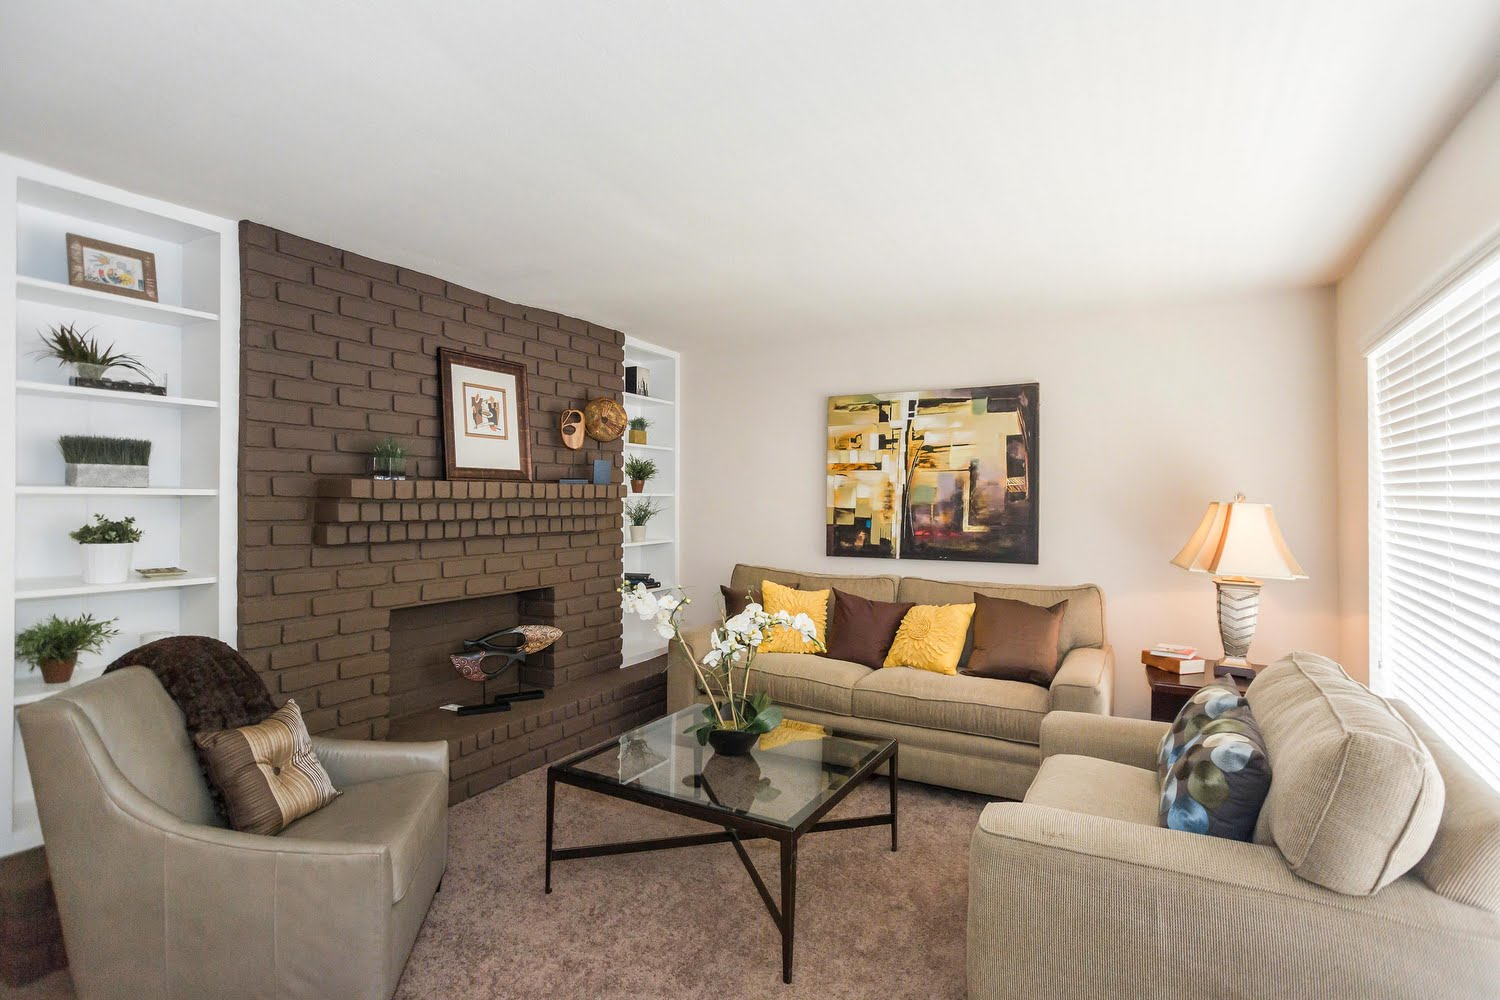 Country club place apartments for rent in houston texas - Villa de matel houston tx ...